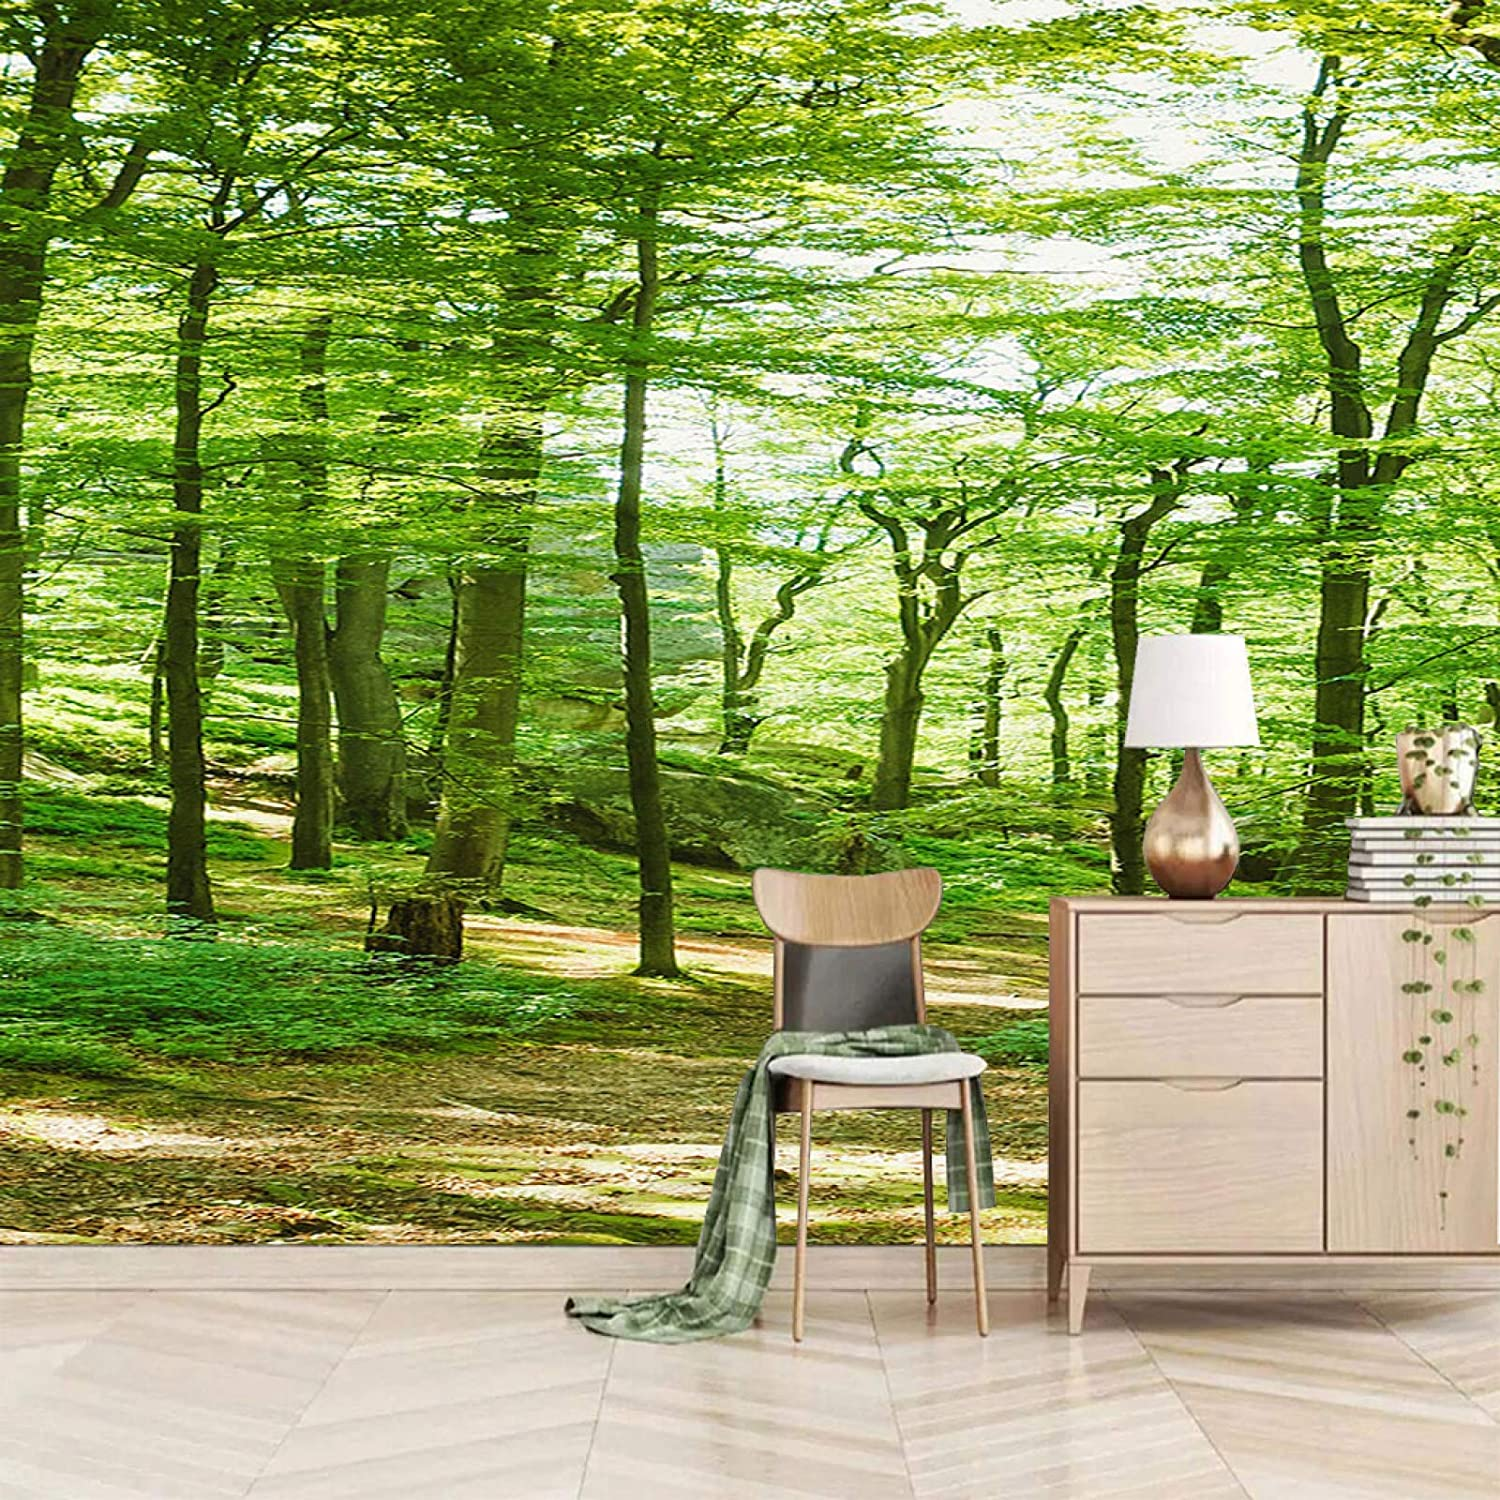 XiaoCha San Antonio Mall Green Plants Large-scale sale Woods 3D Stickers Self-Adhesive Wall